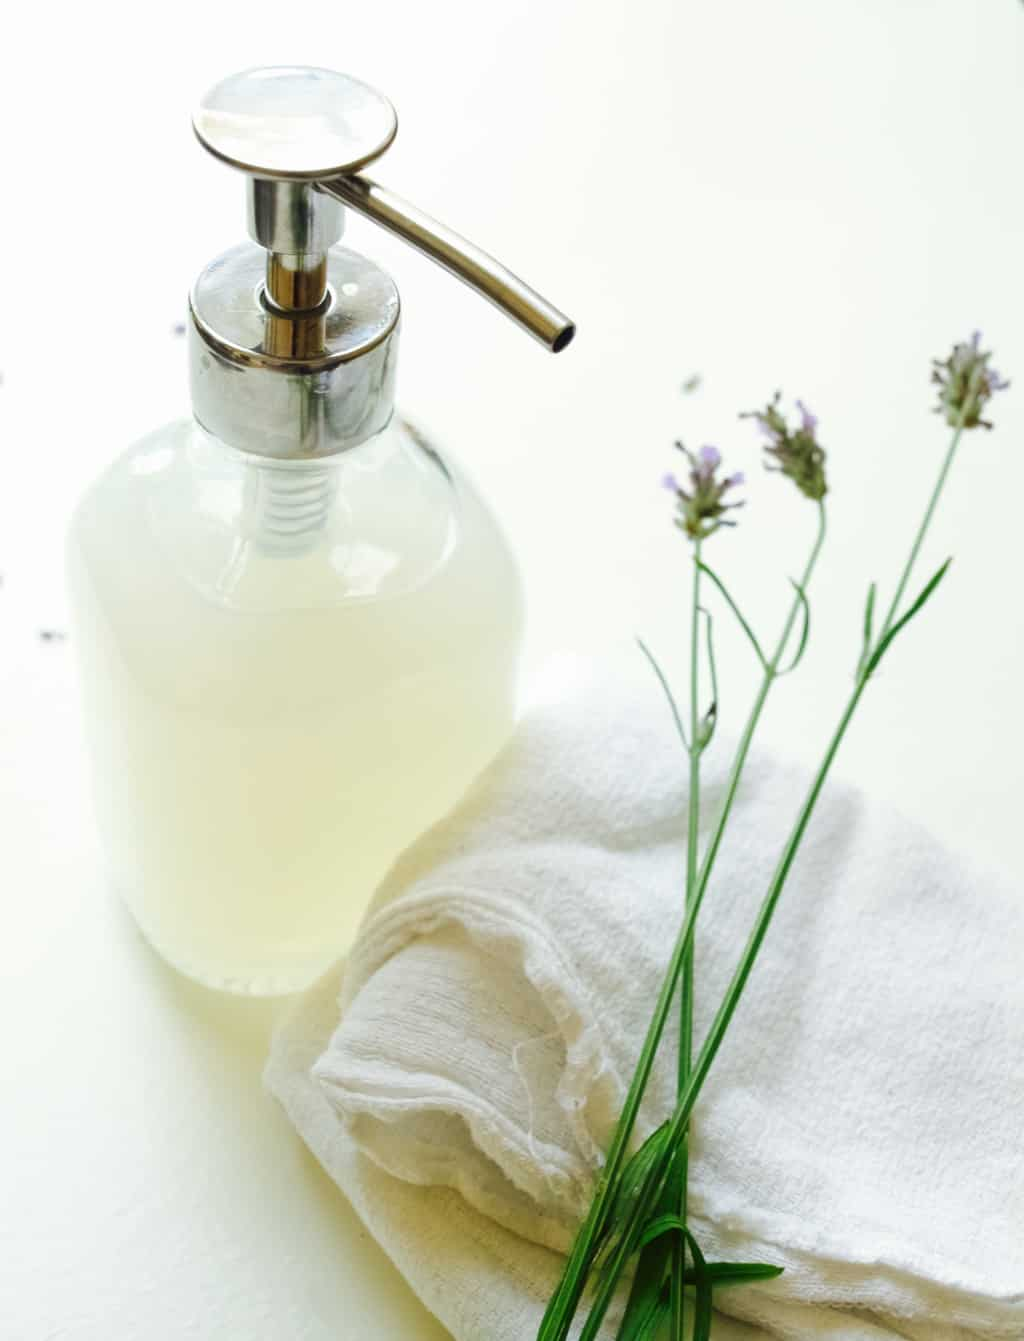 Quick and easy liquid hand soap recipe